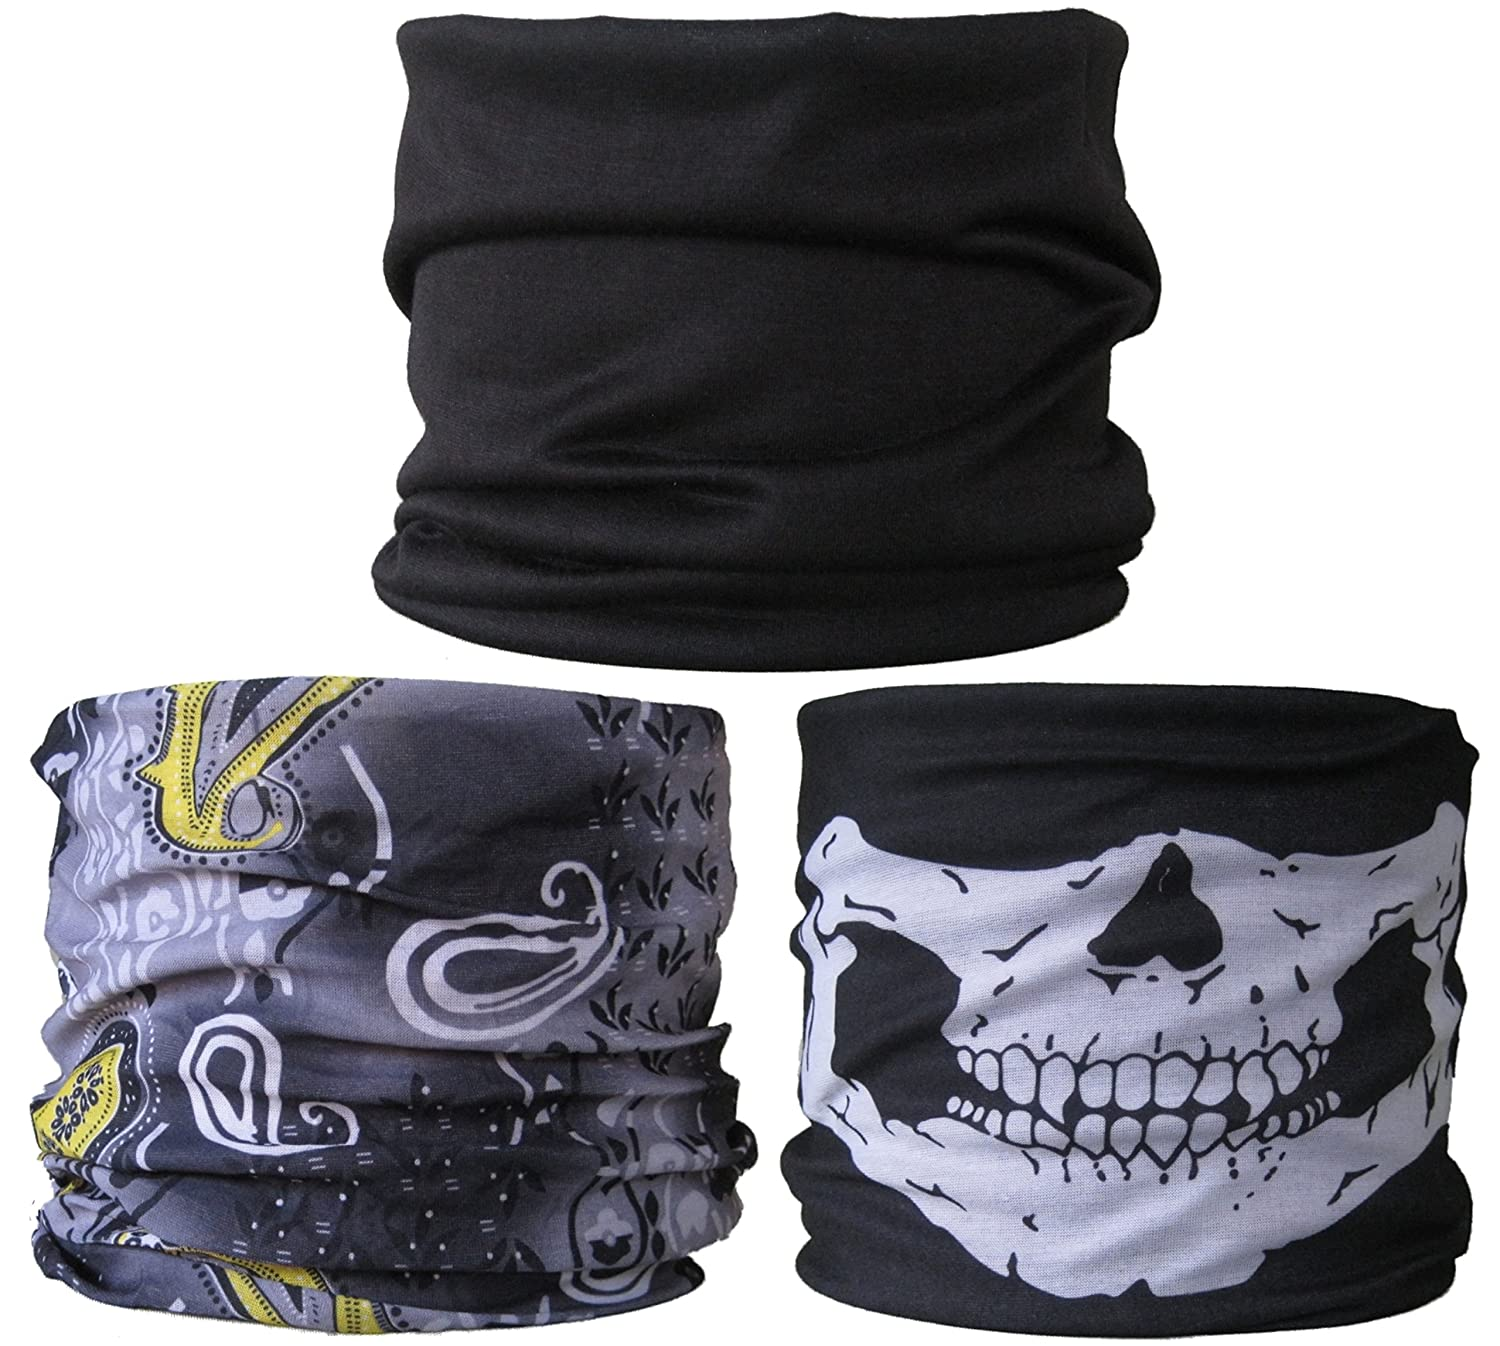 (3 PACK) Multifunctional Headwear...Plain Black / Grey & Yellow Paisley / Skull Jaw